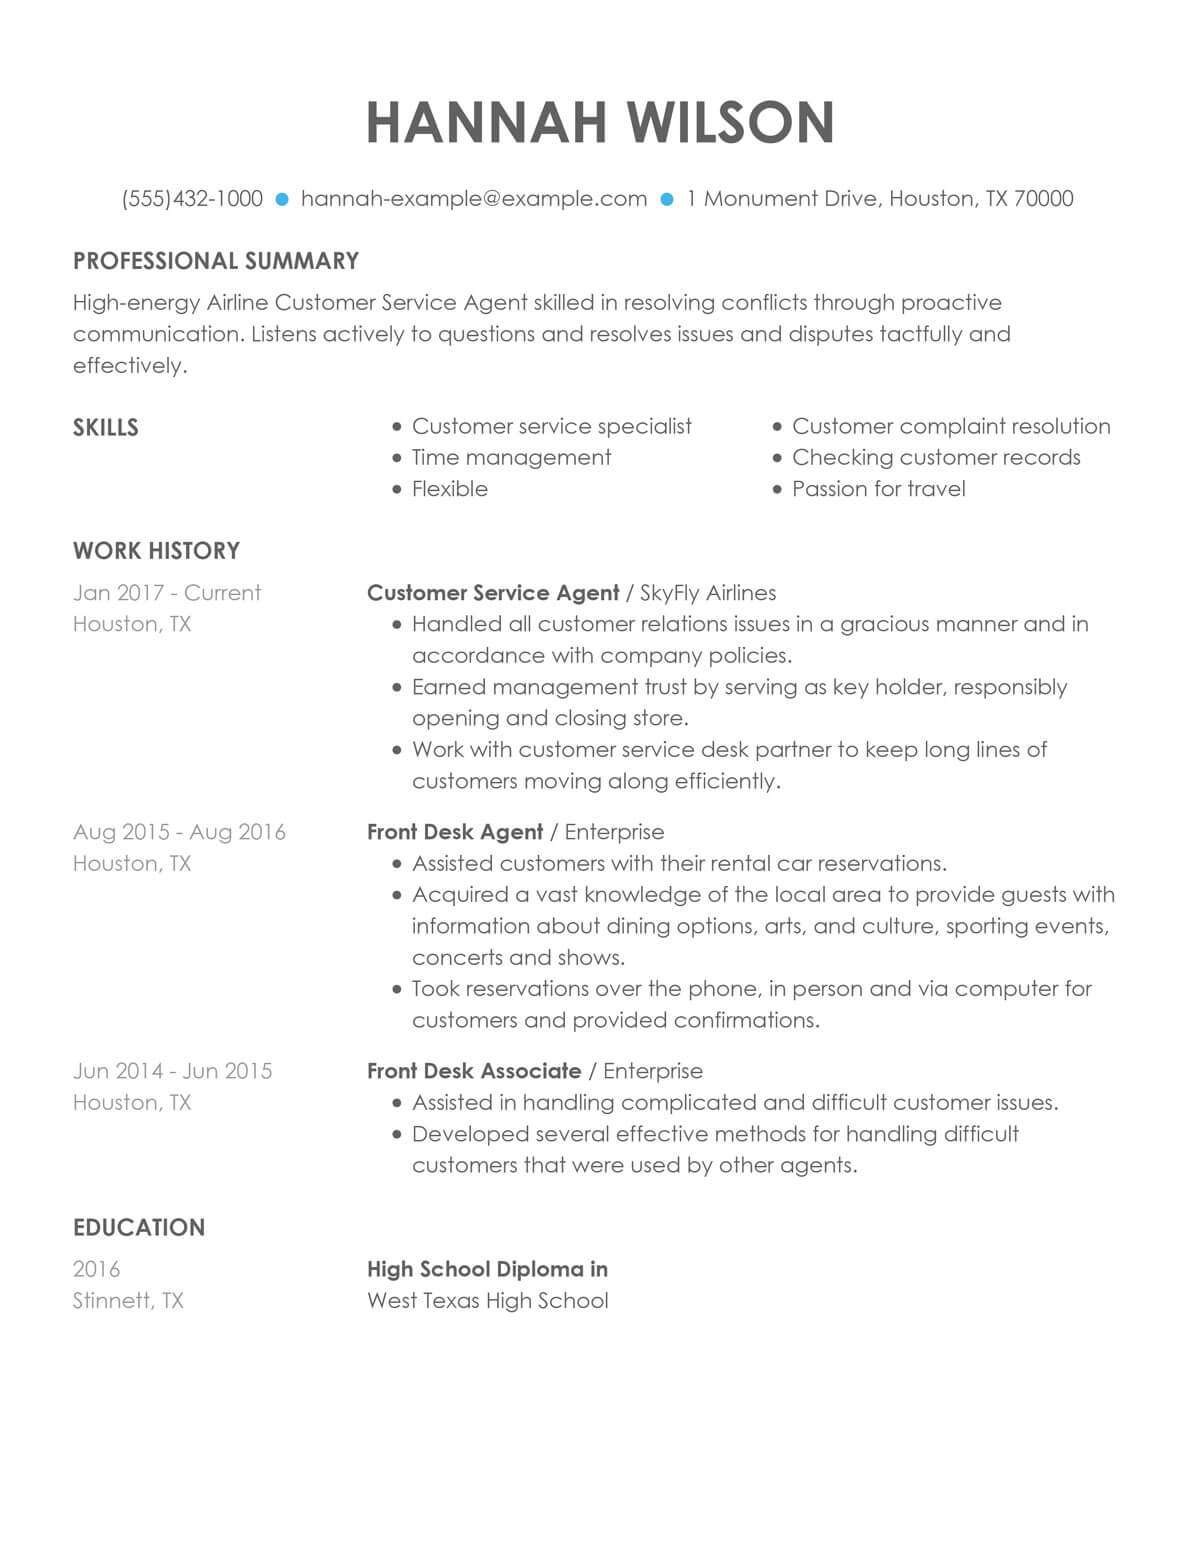 customize our customer representative resume example entry level airline service agent Resume Entry Level Airline Customer Service Resume